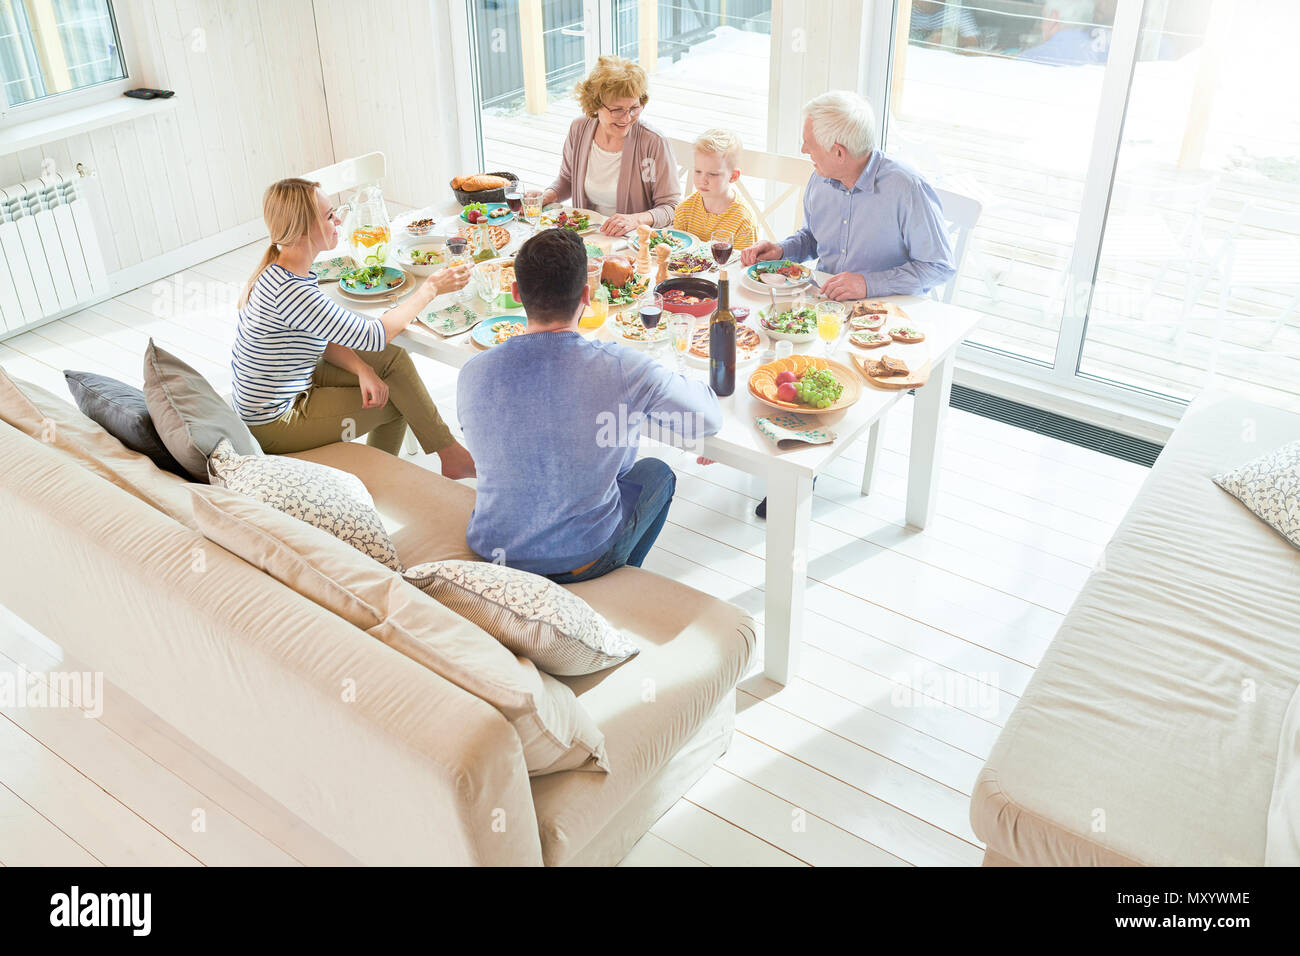 Wide angle portrait of happy two generation  family enjoying dinner together sitting at festive table with delicious dishes during  holiday  celebrati - Stock Image